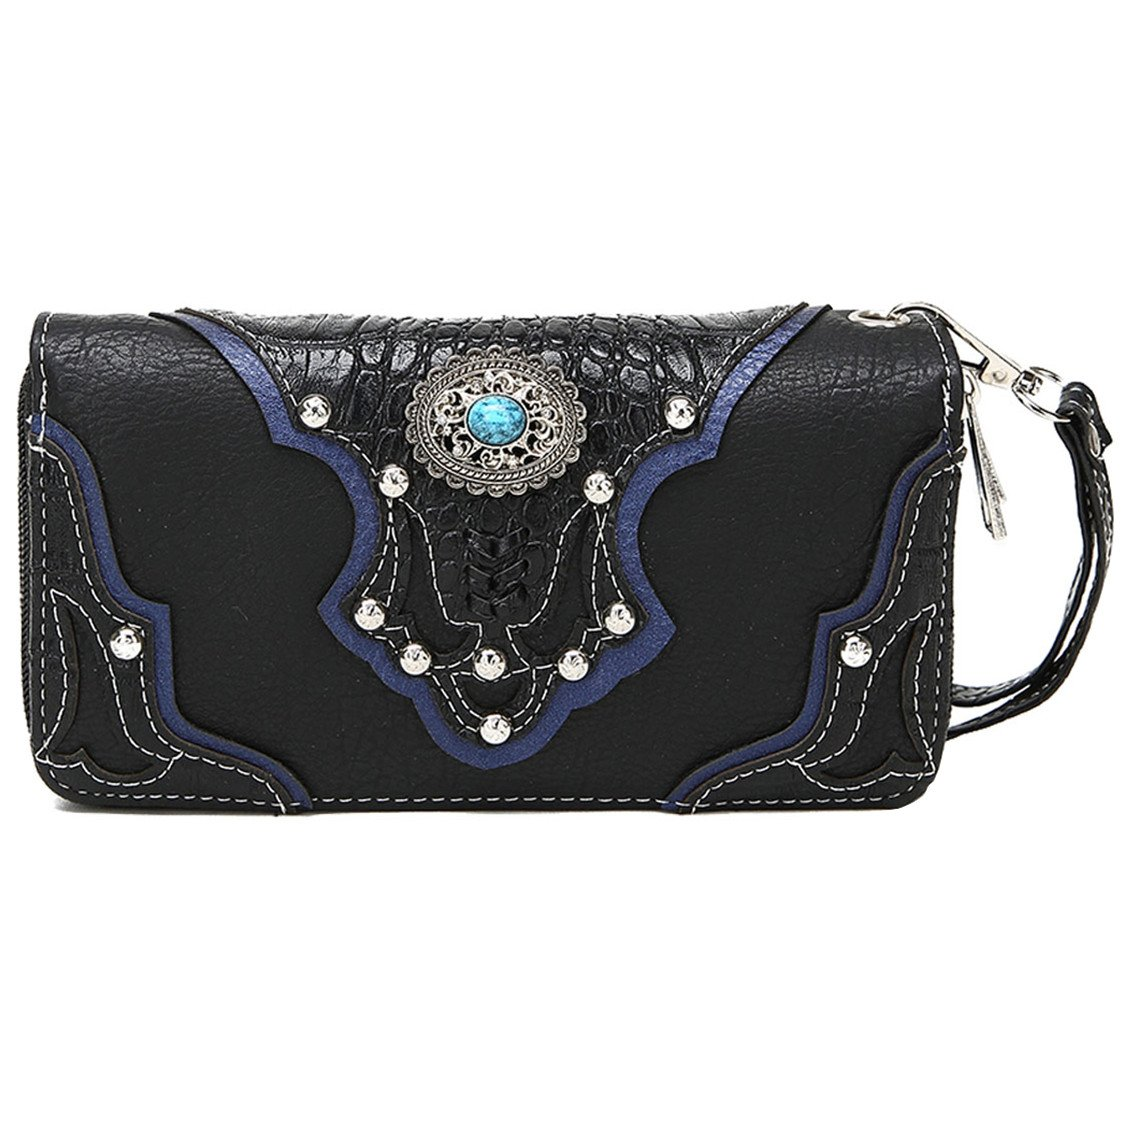 Conchos Studded Crocodile Laser Cut Cowgirl Western Style Country Purse Wrist Strap Women Wristlet Wallet (Black)